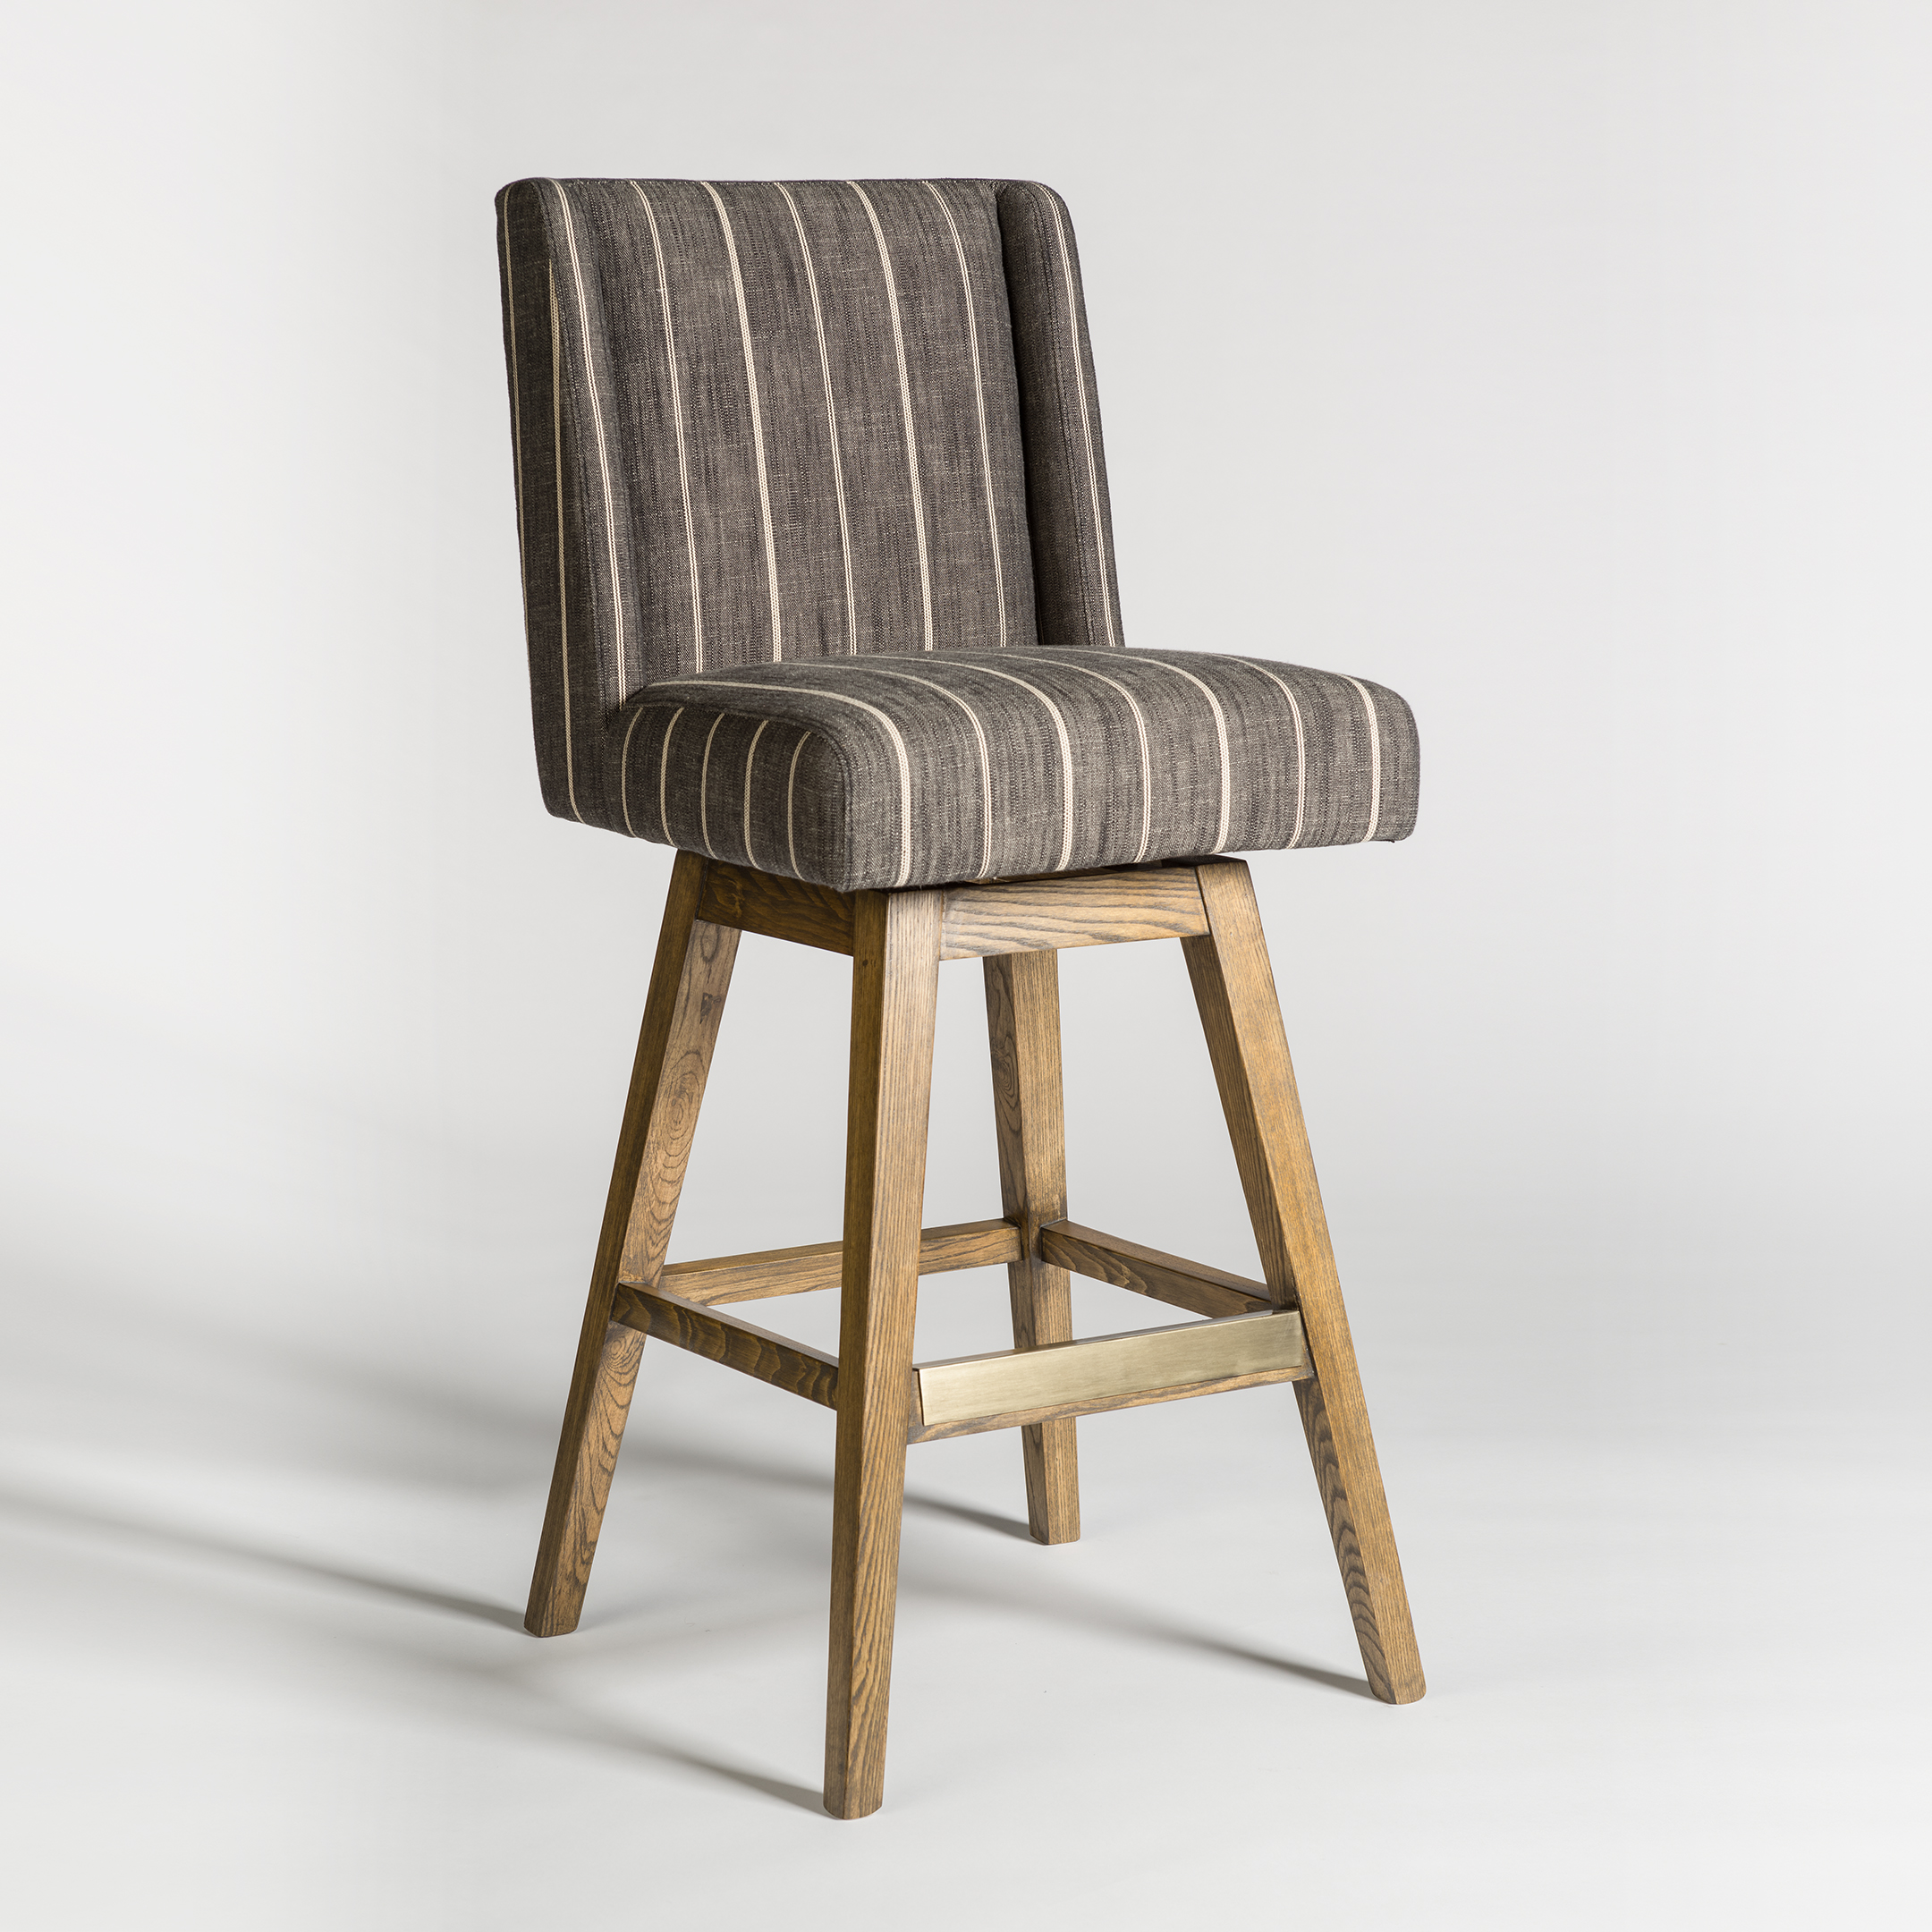 Admirable Alder And Tweed Bar Stools Uwap Interior Chair Design Uwaporg